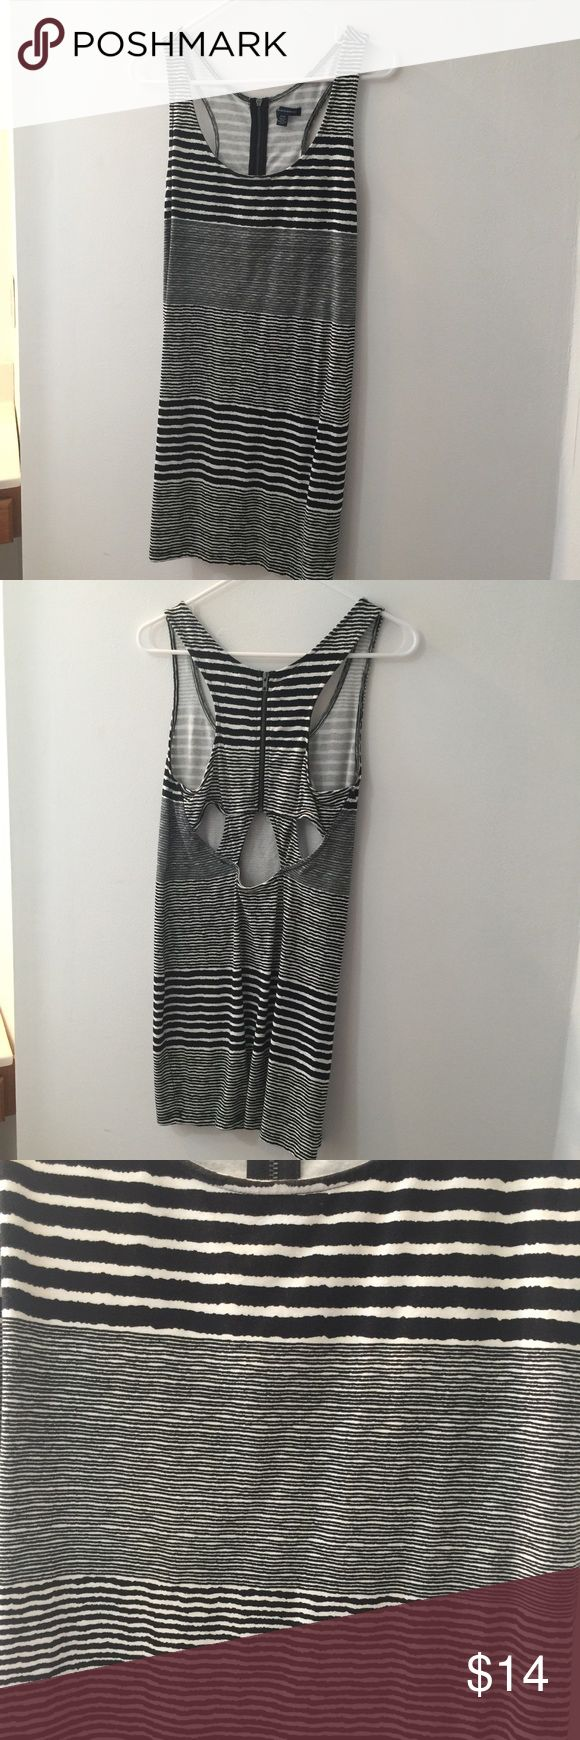 Americn Eagle Racerback Striped Bodycon Mini Dress Has only been worn once, it's like new. It's a size medium. There's a zipper in the back. There are also cut outs in the back. This would pair perfectly with a choker and converse! I do not trade or hold items. American Eagle Outfitters Dresses Mini